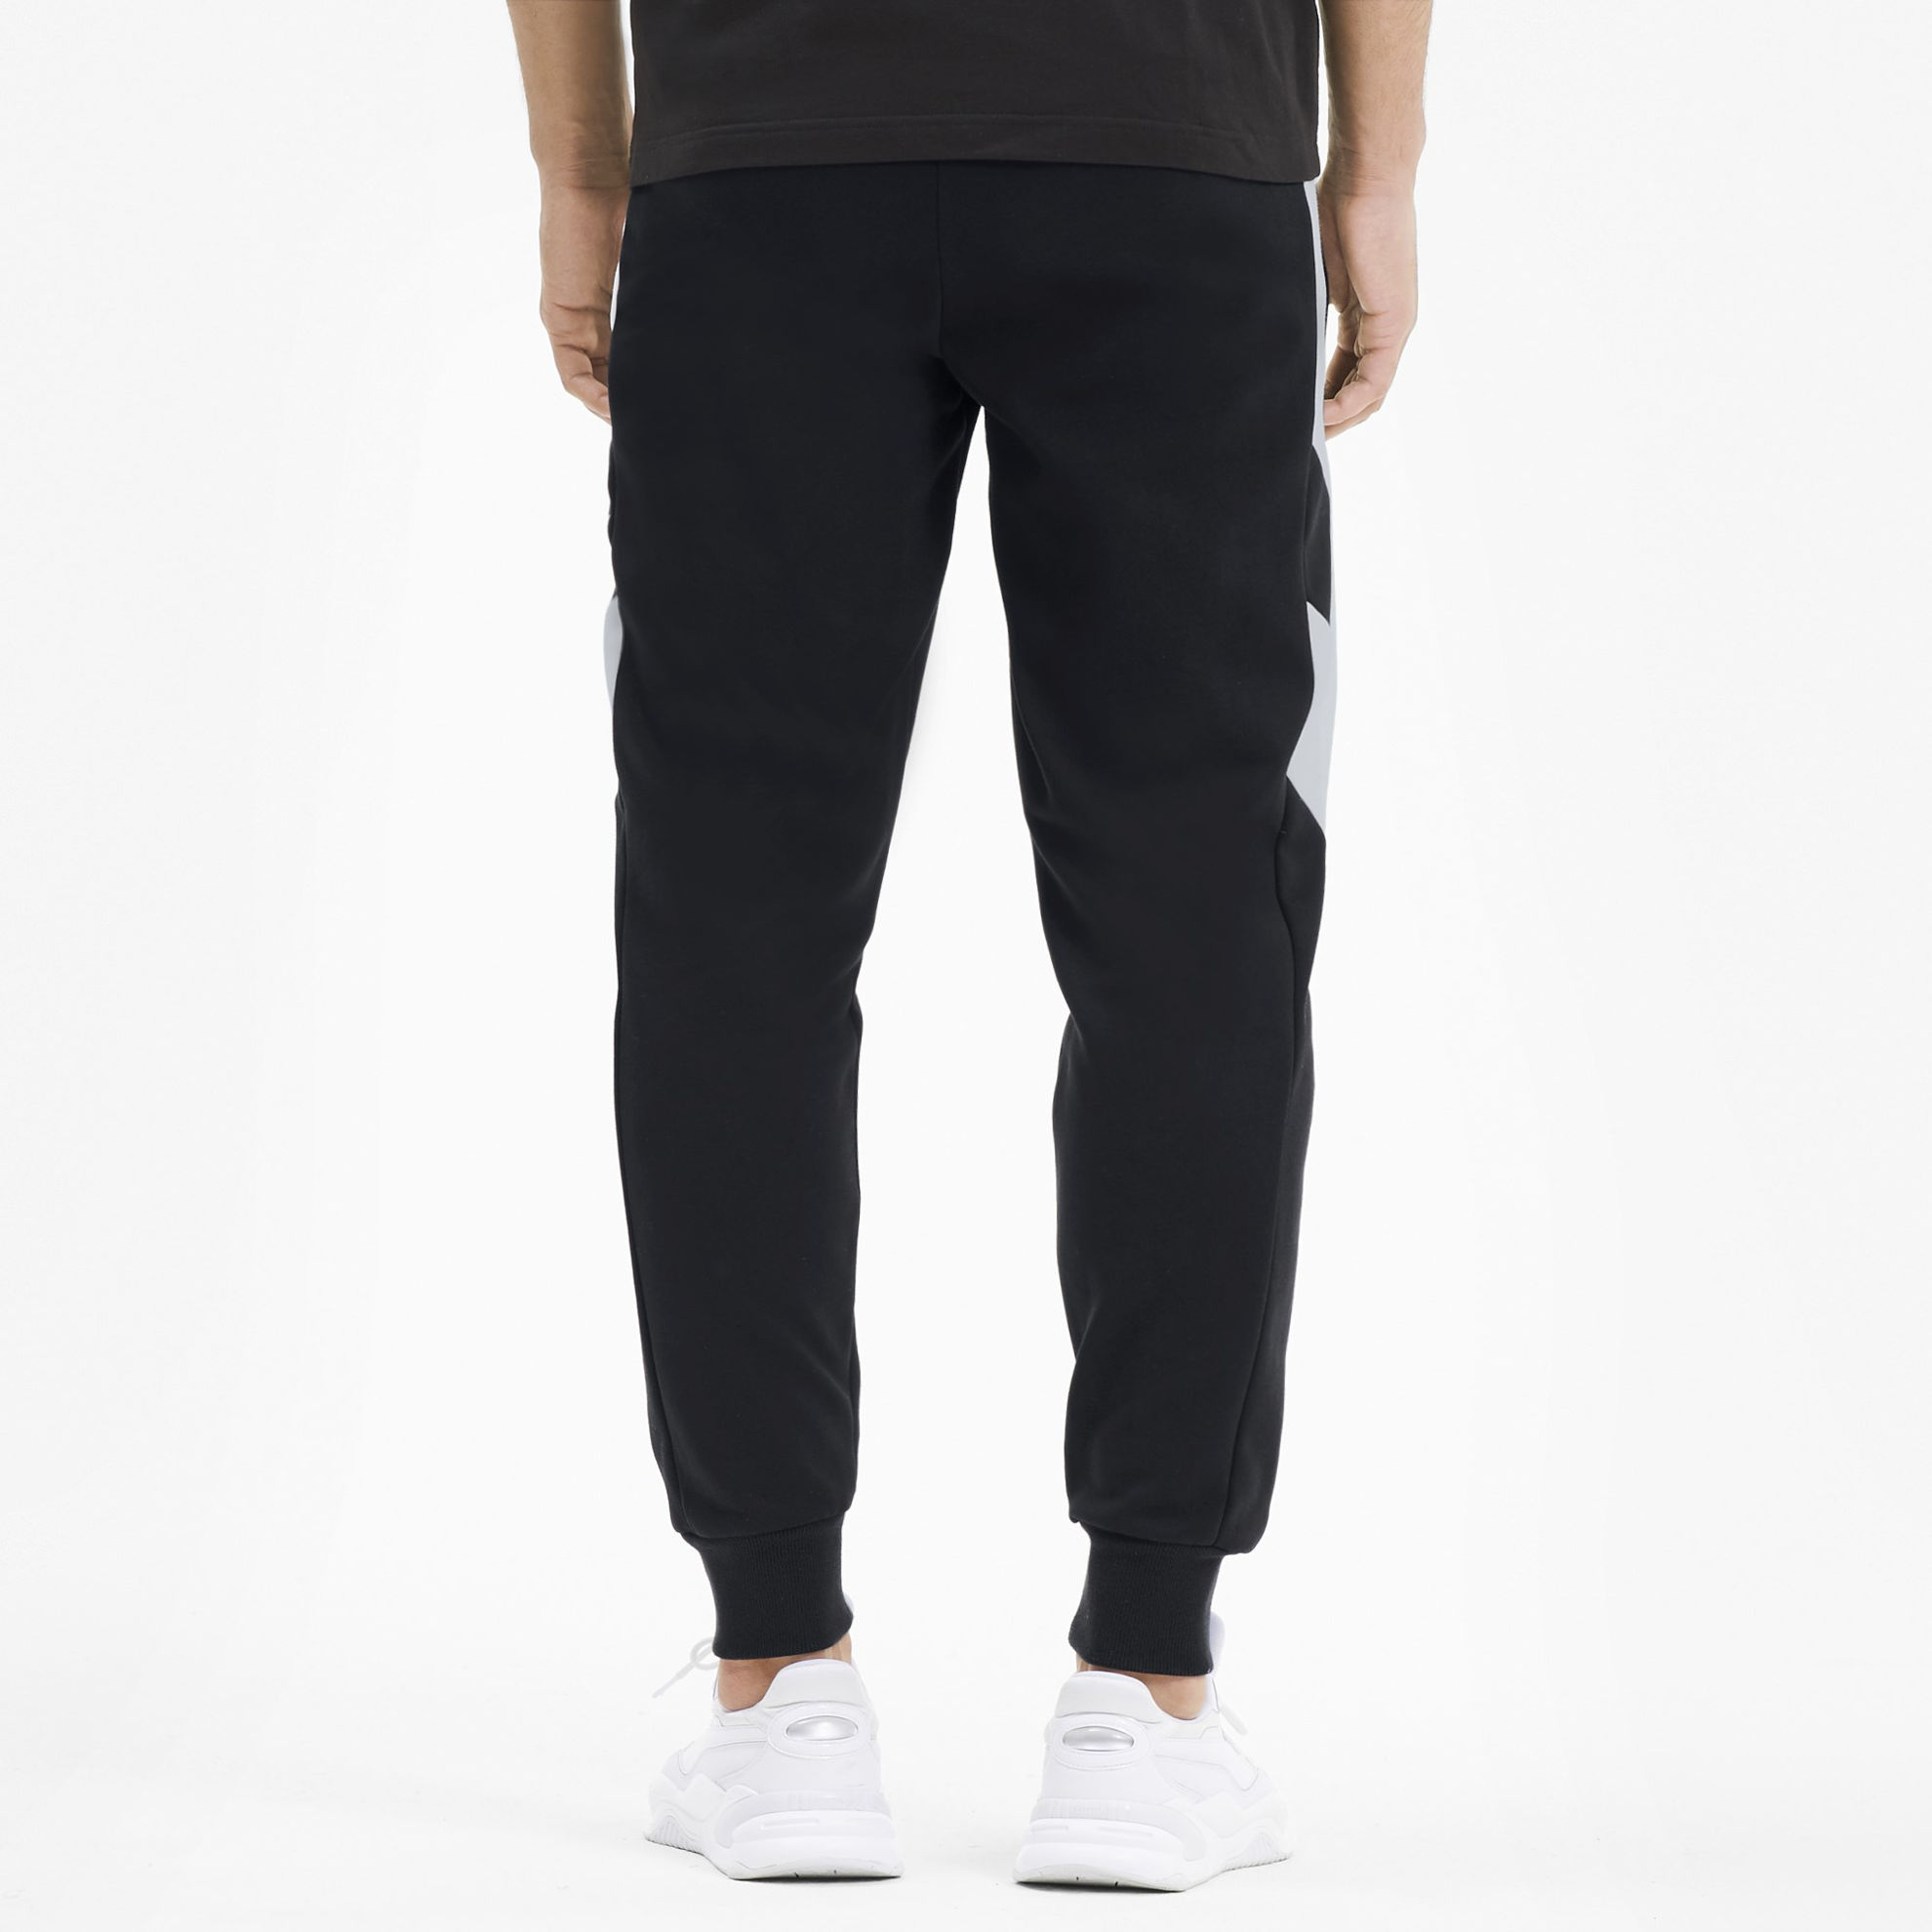 Immagine di PUMA - PANTALONE MODERN SPORTS PANTS BLACK